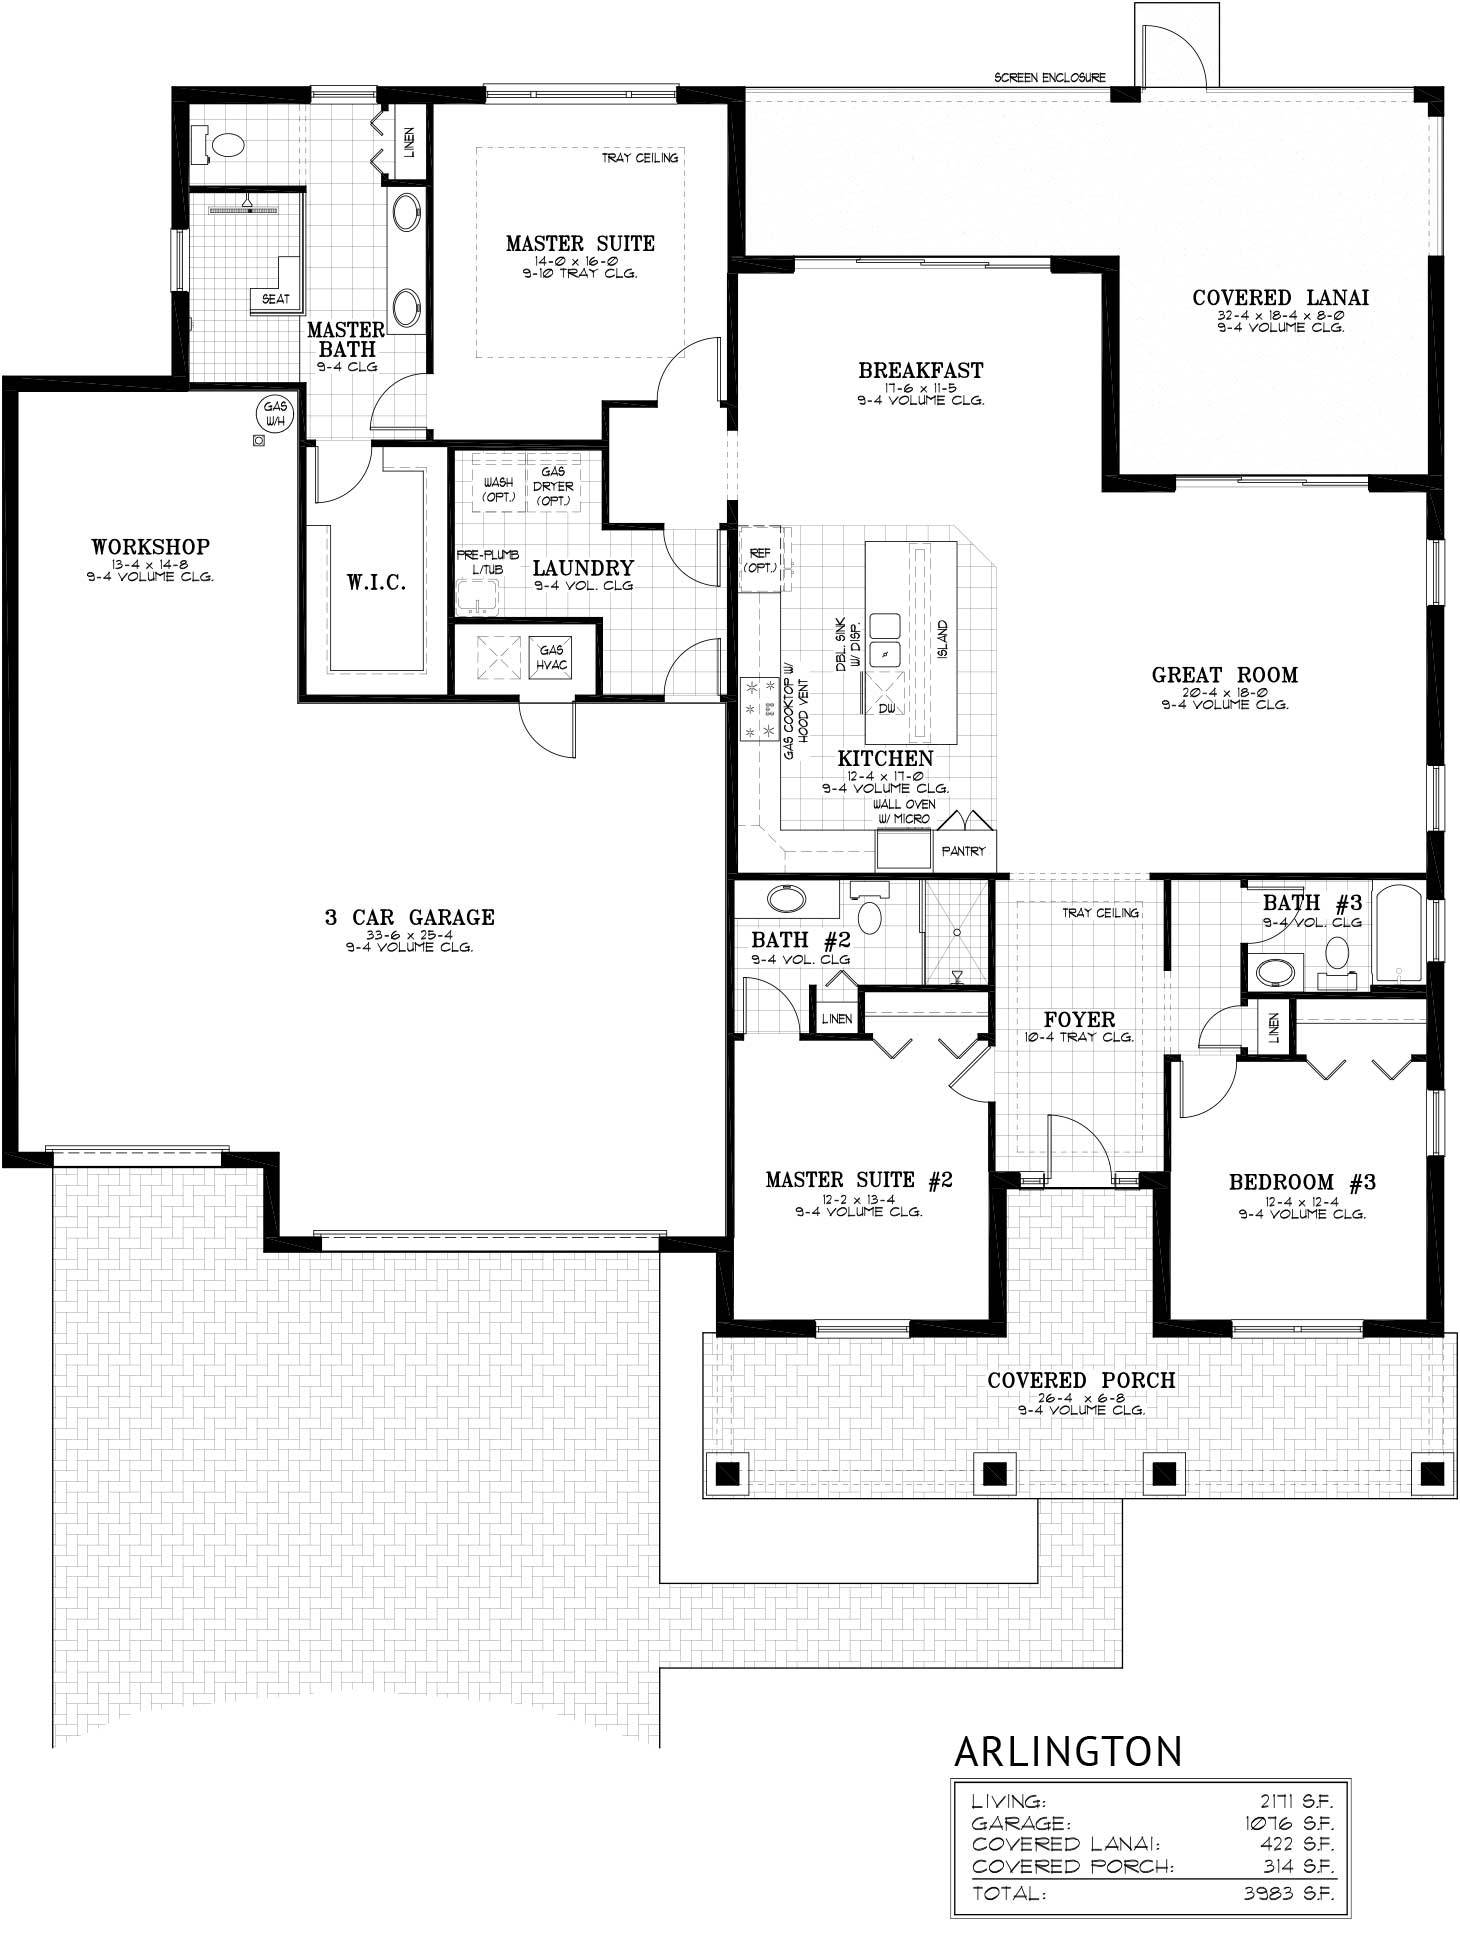 Arlington Plan Ocala Florida 34481